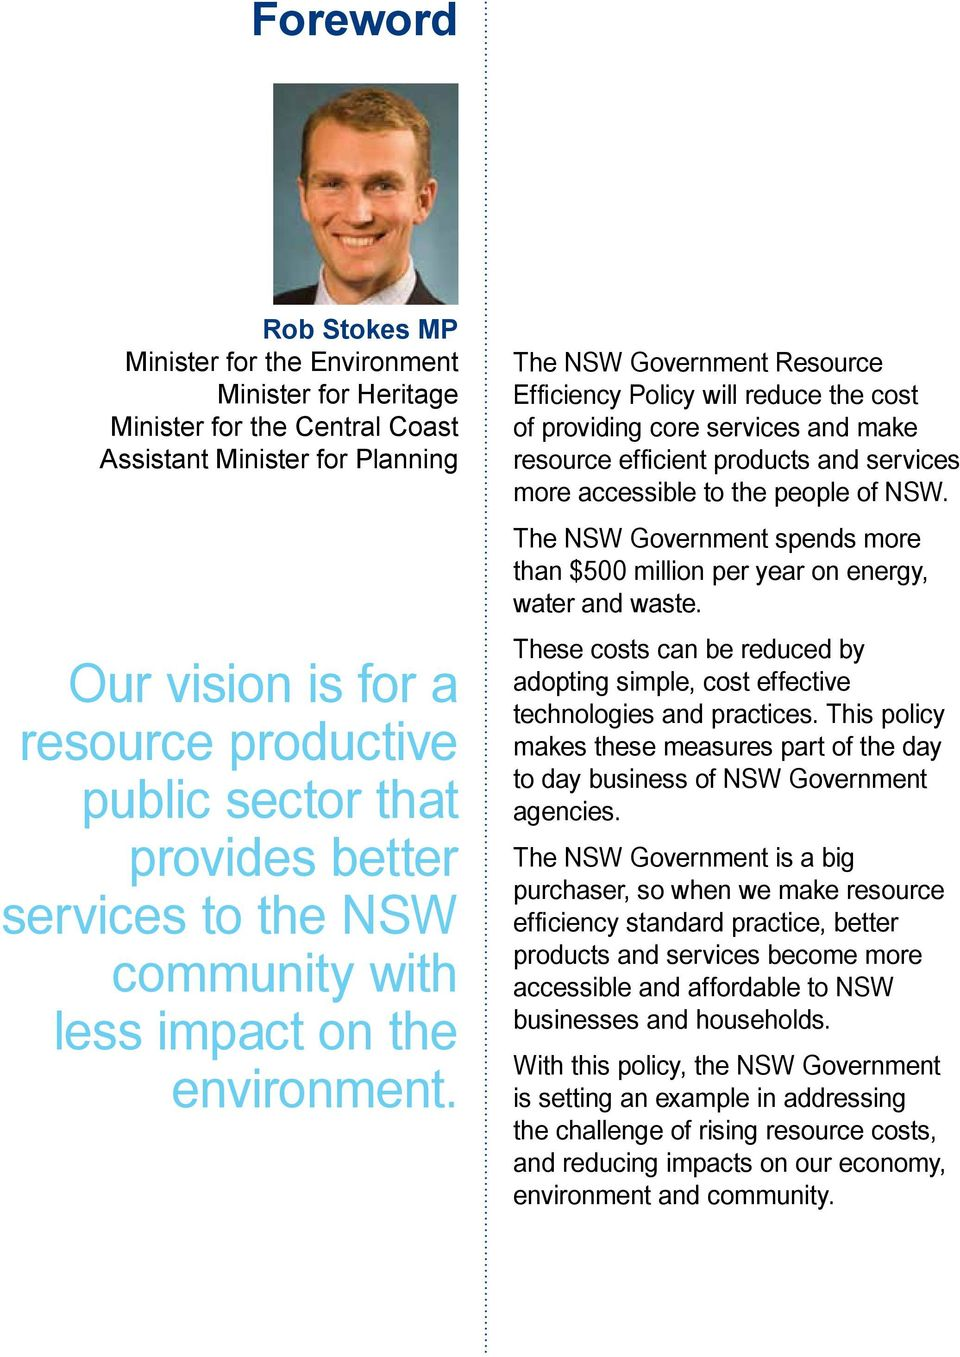 The NSW Government Resource Efficiency Policy will reduce the cost of providing core services and make resource efficient products and services more accessible to the people of NSW.